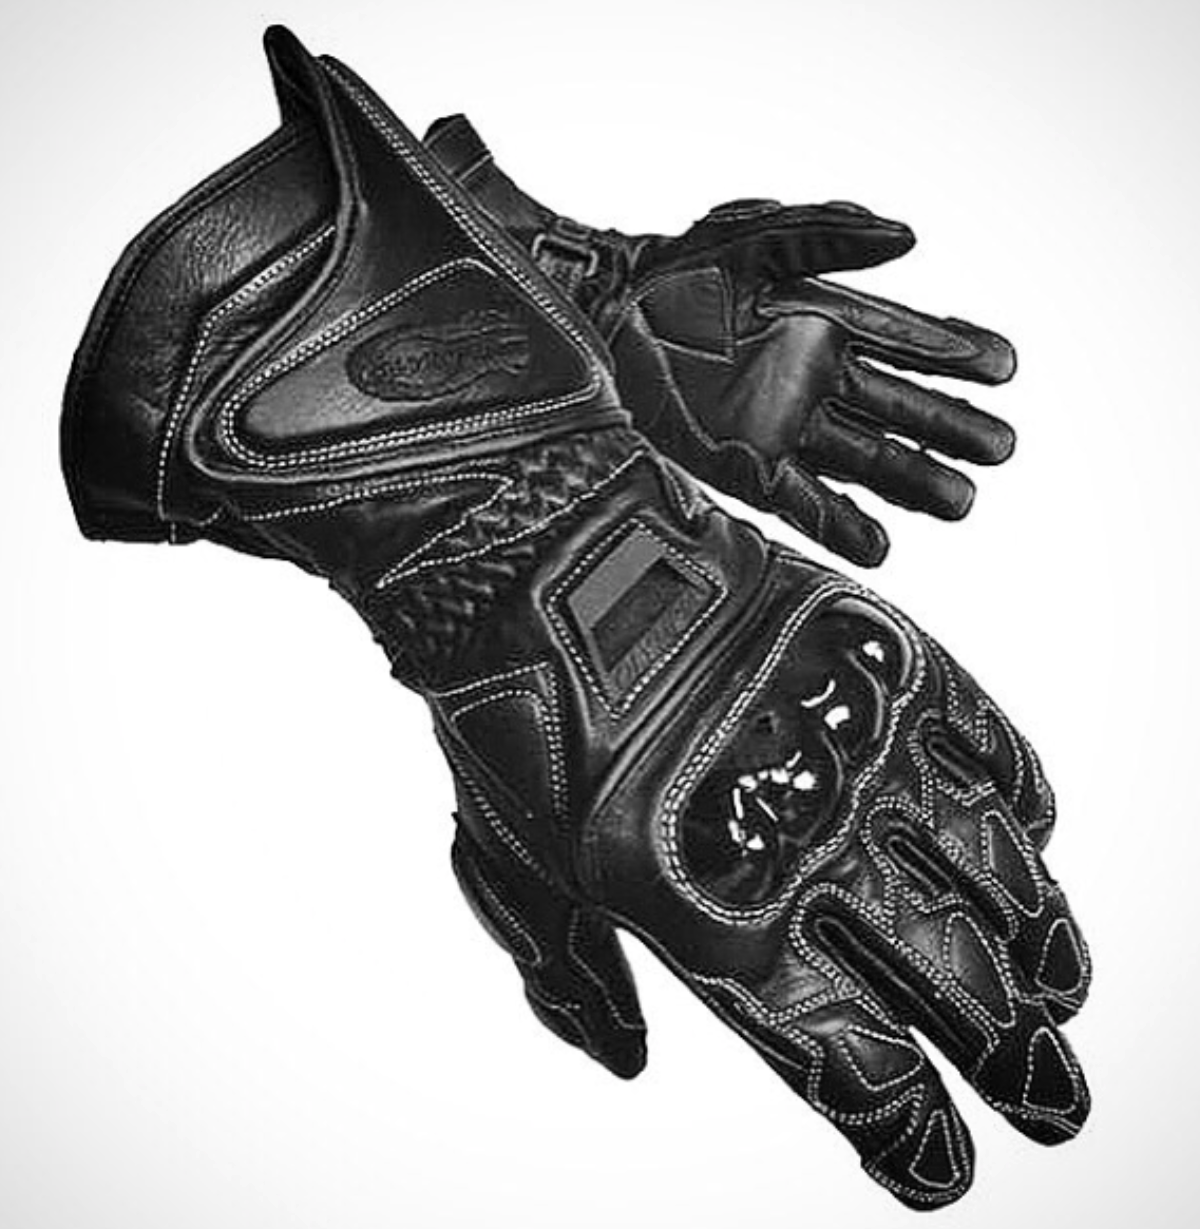 MENS MOTORCYCLE WATERPOOF GLOVES WITH GEL PALM W//HARD CARBON FULL FINGER RIDING